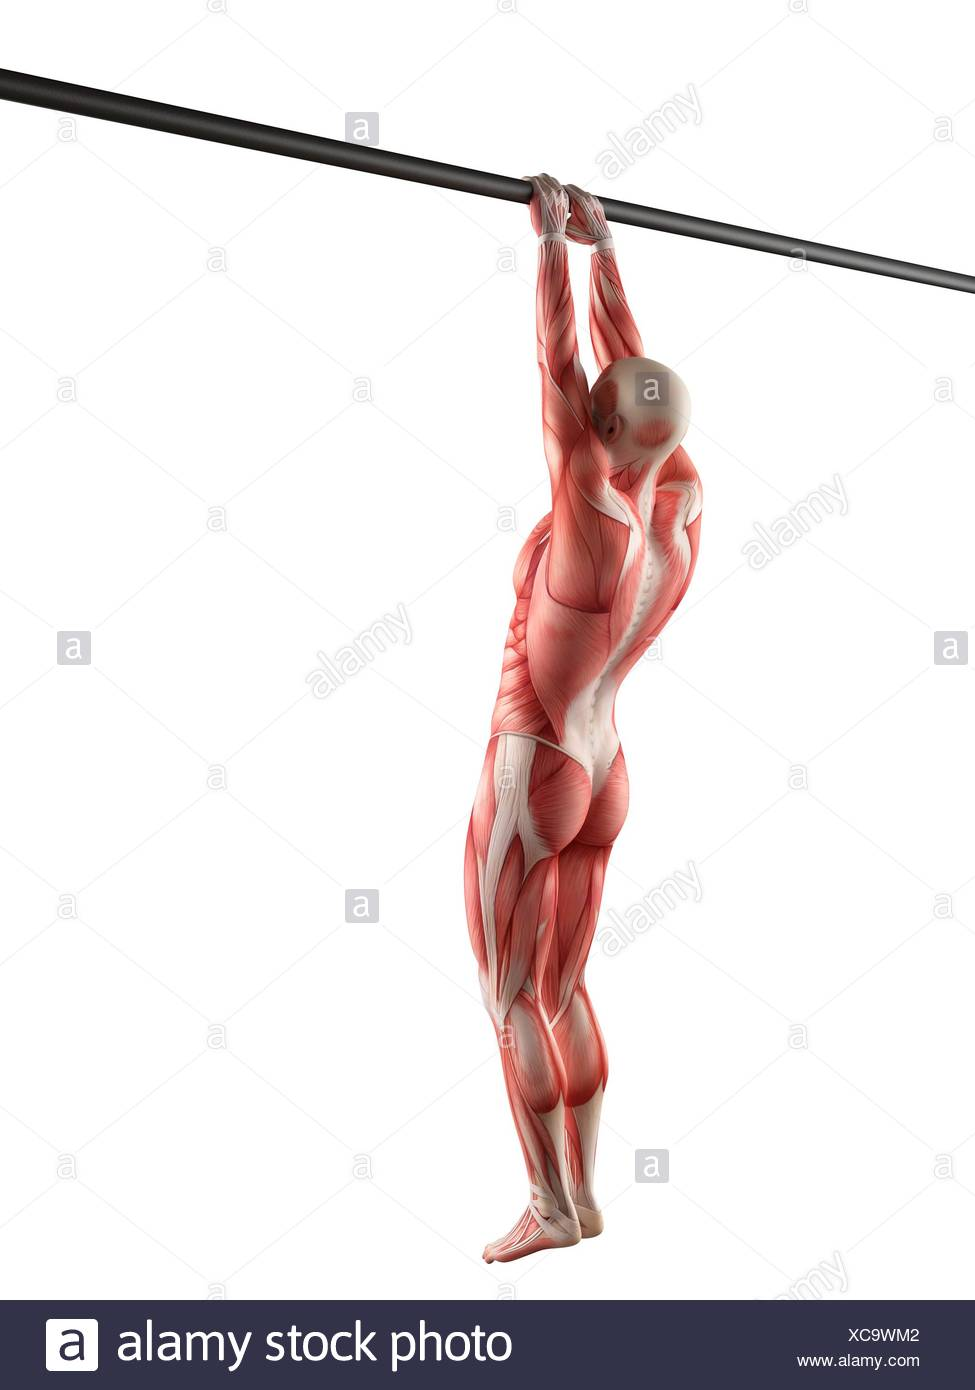 Muscular system of person using chin up bar, illustration Stock ...